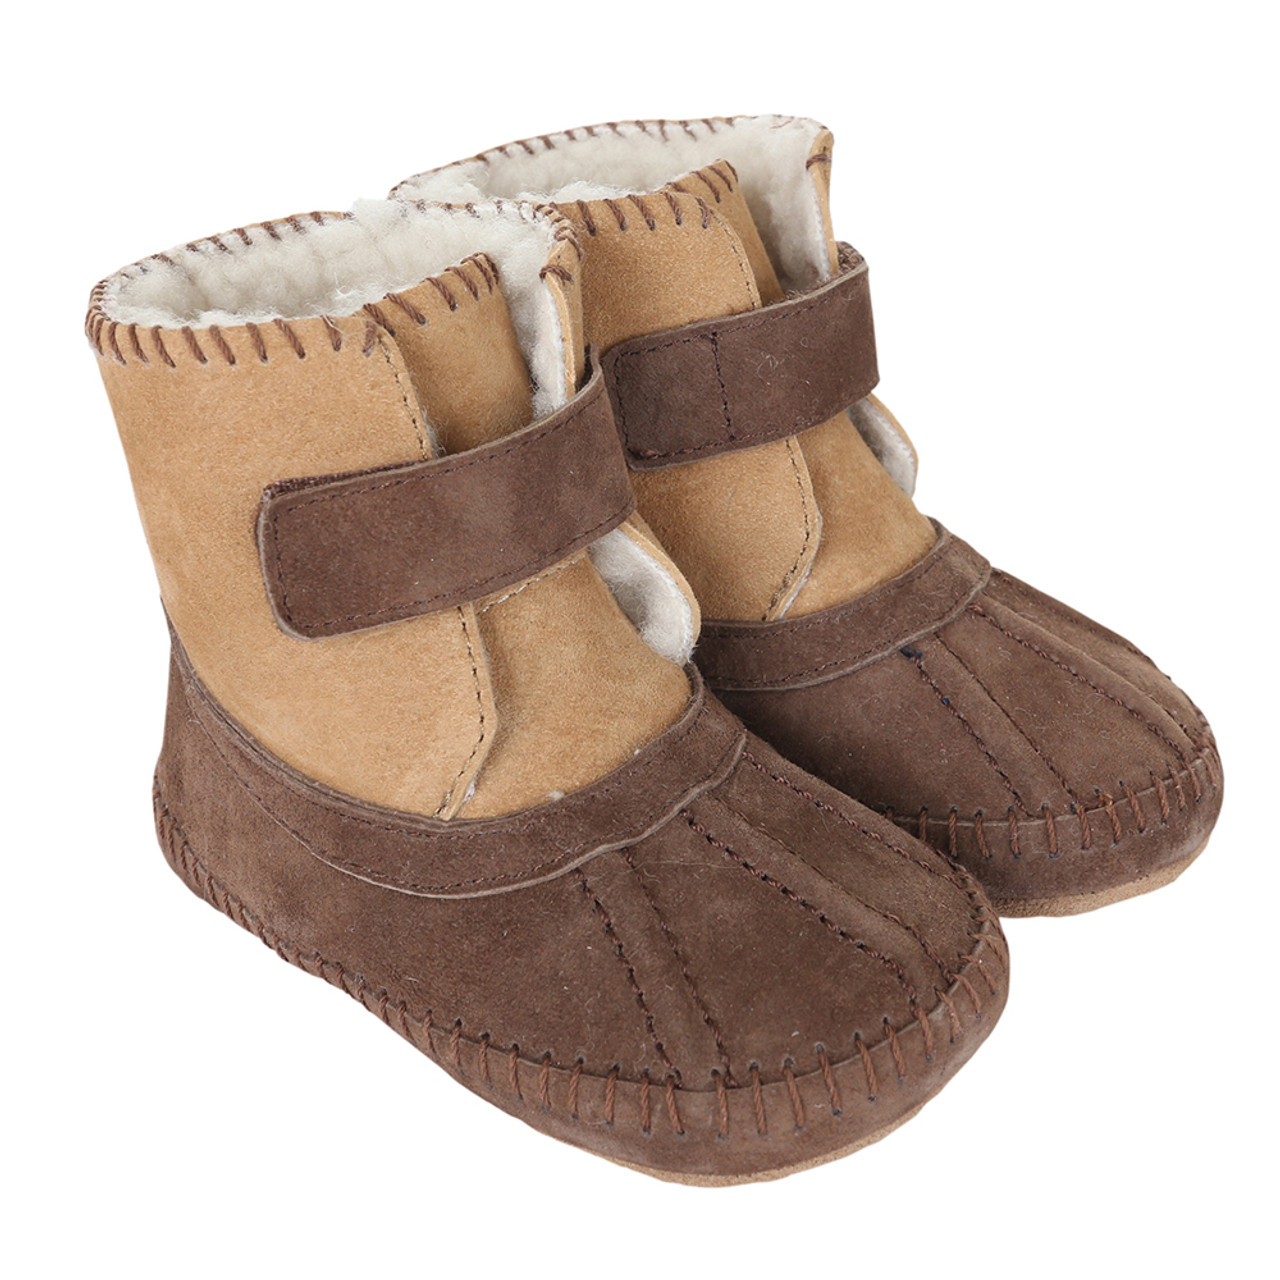 e015c29065515 Robeez Galway Cozy Boots Brown Soft Soles